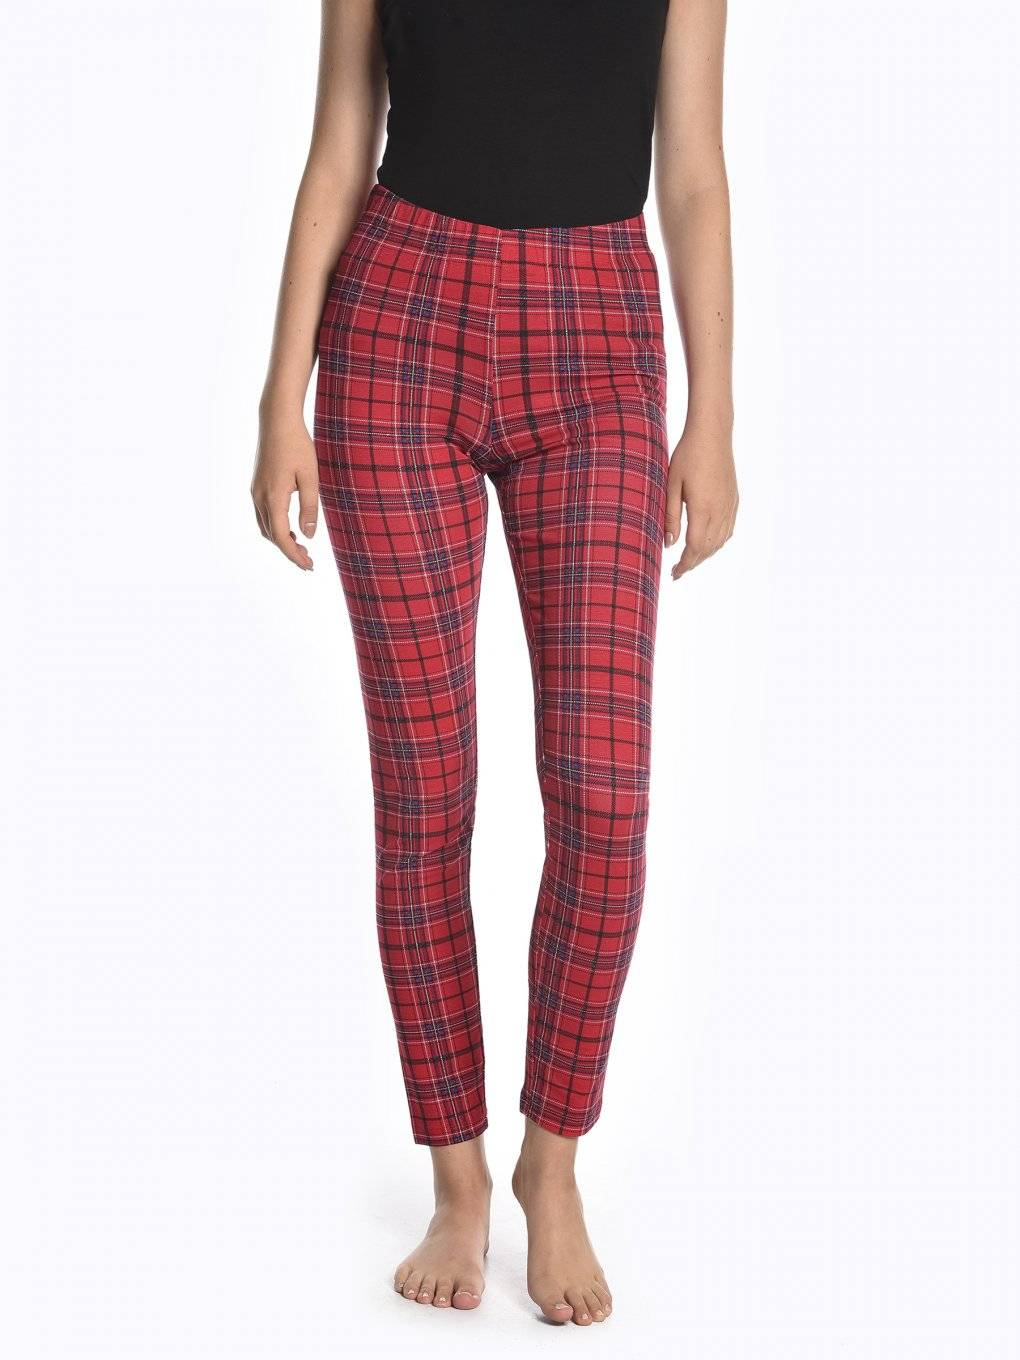 Plaid cotton leggings